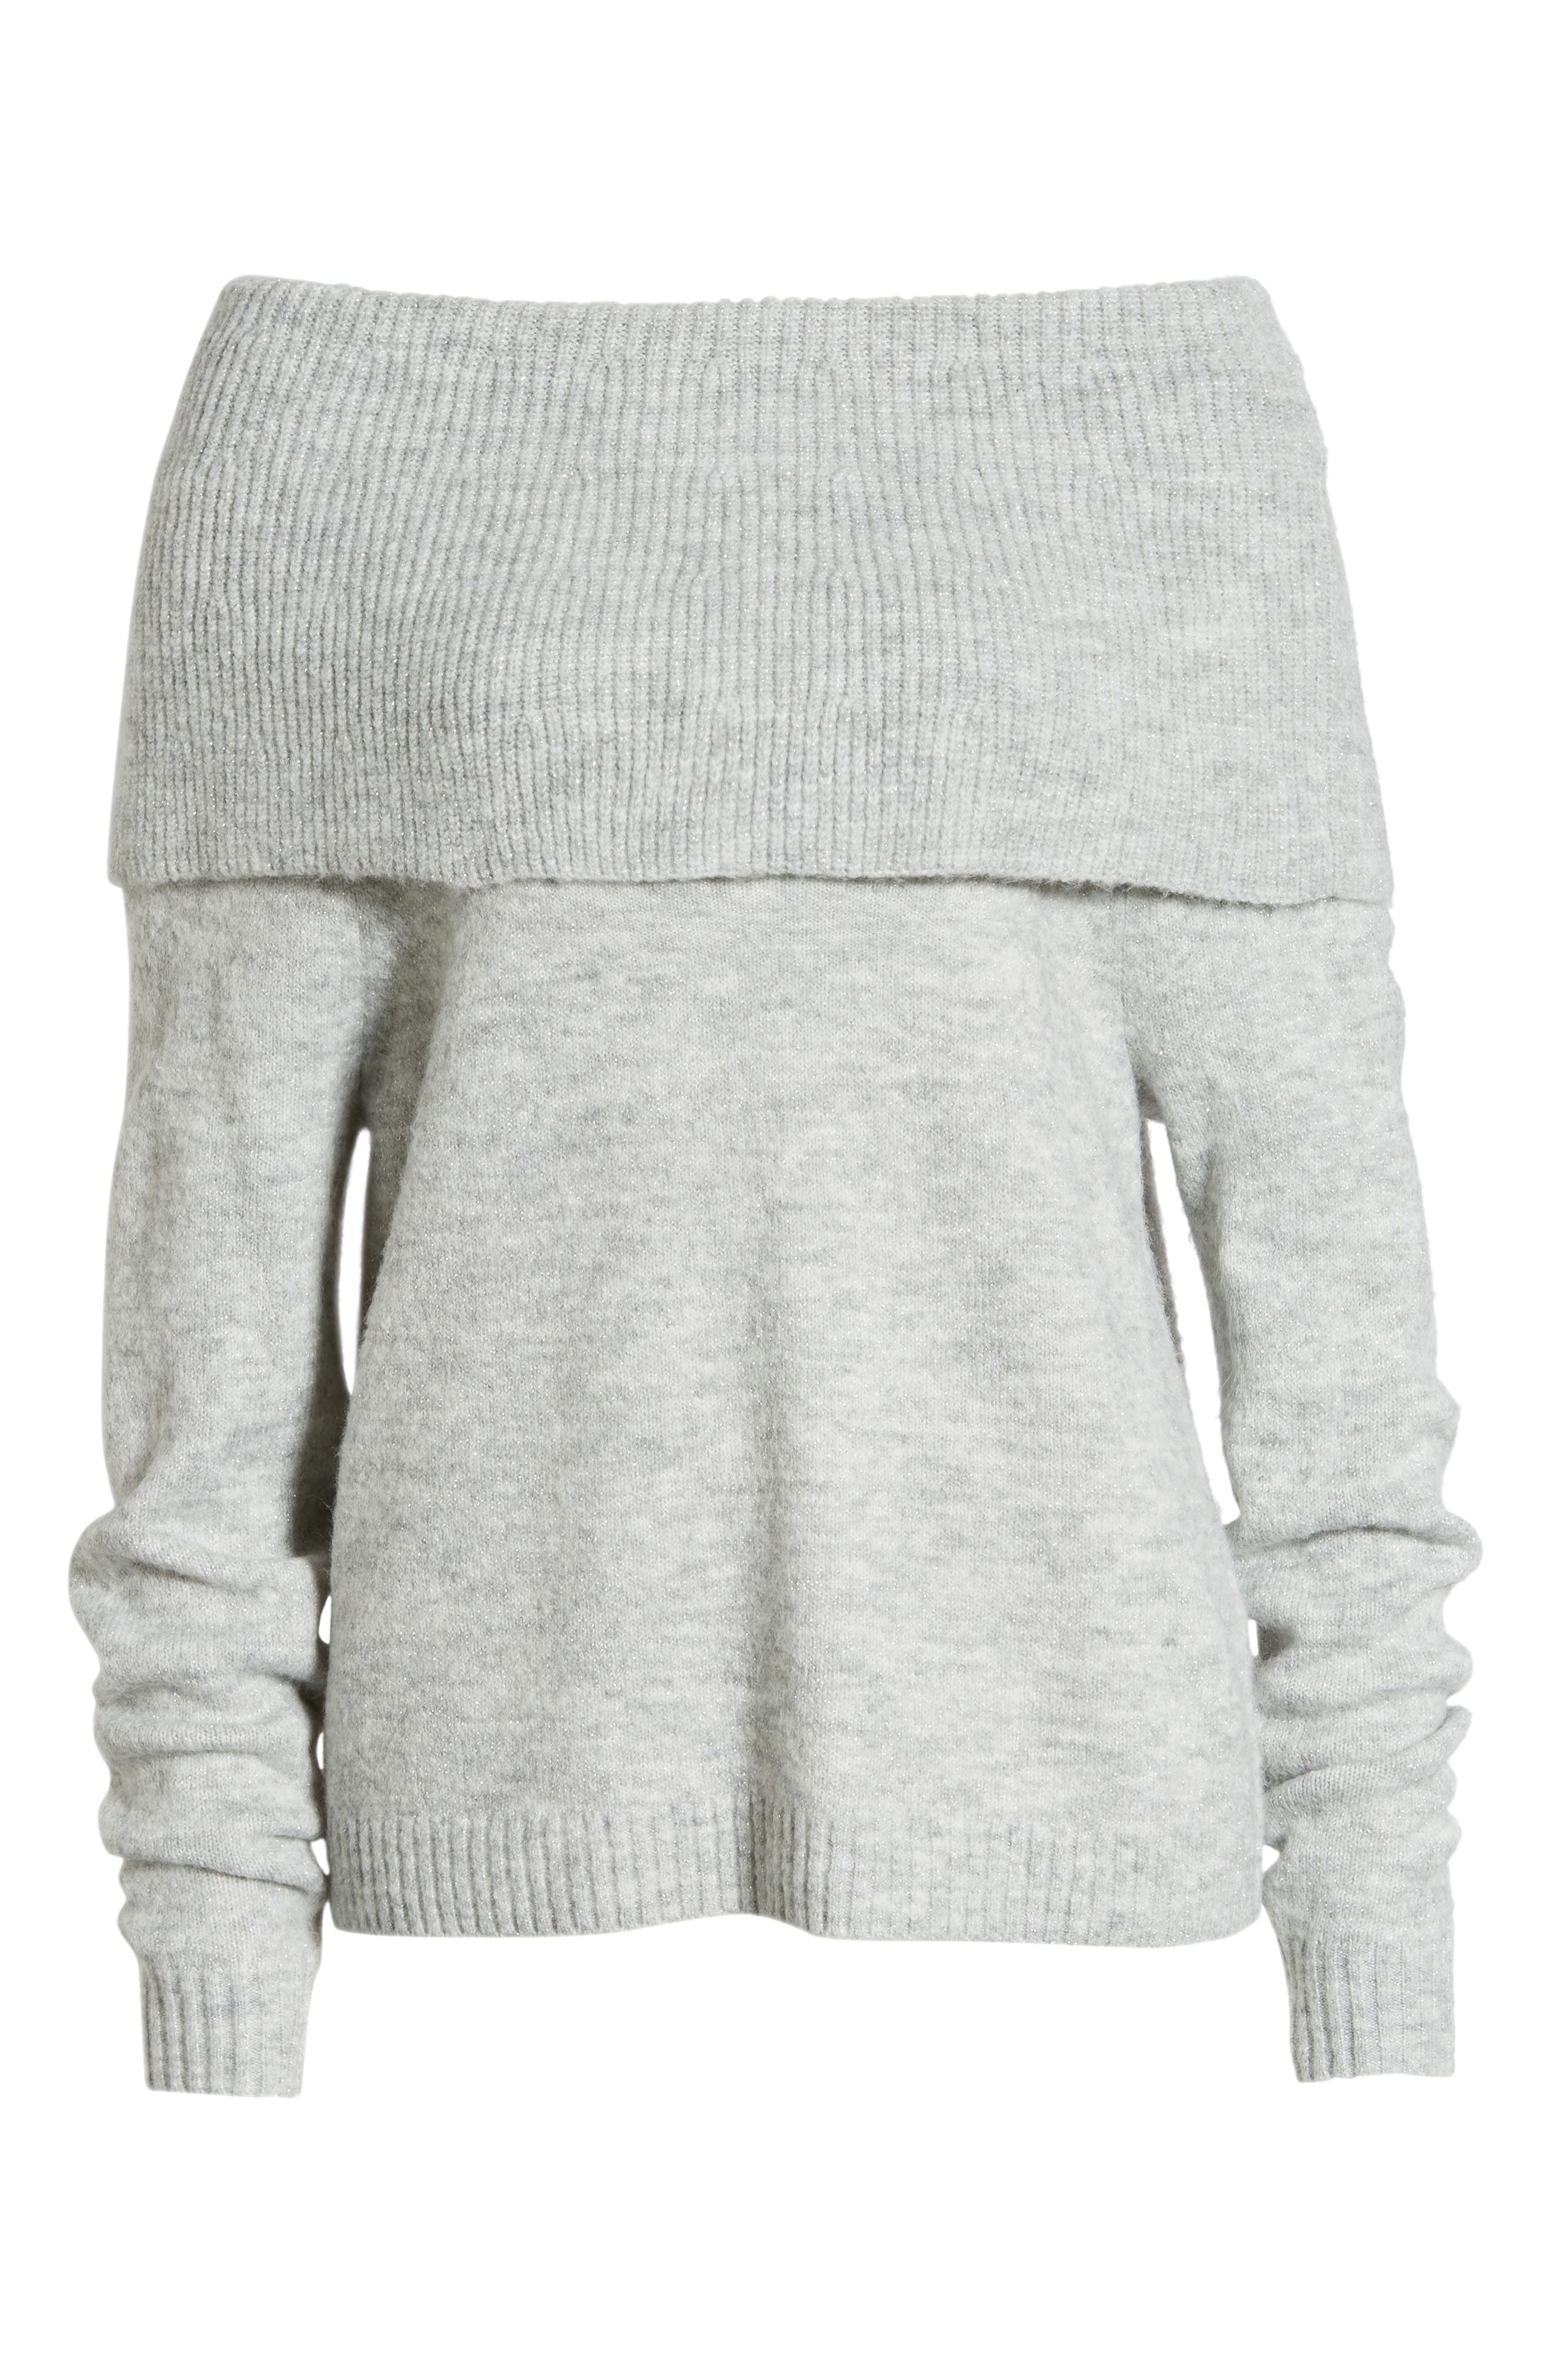 Convertible Cowl Neck Sweater,                             Alternate thumbnail 7, color,                             GREY HEATHER